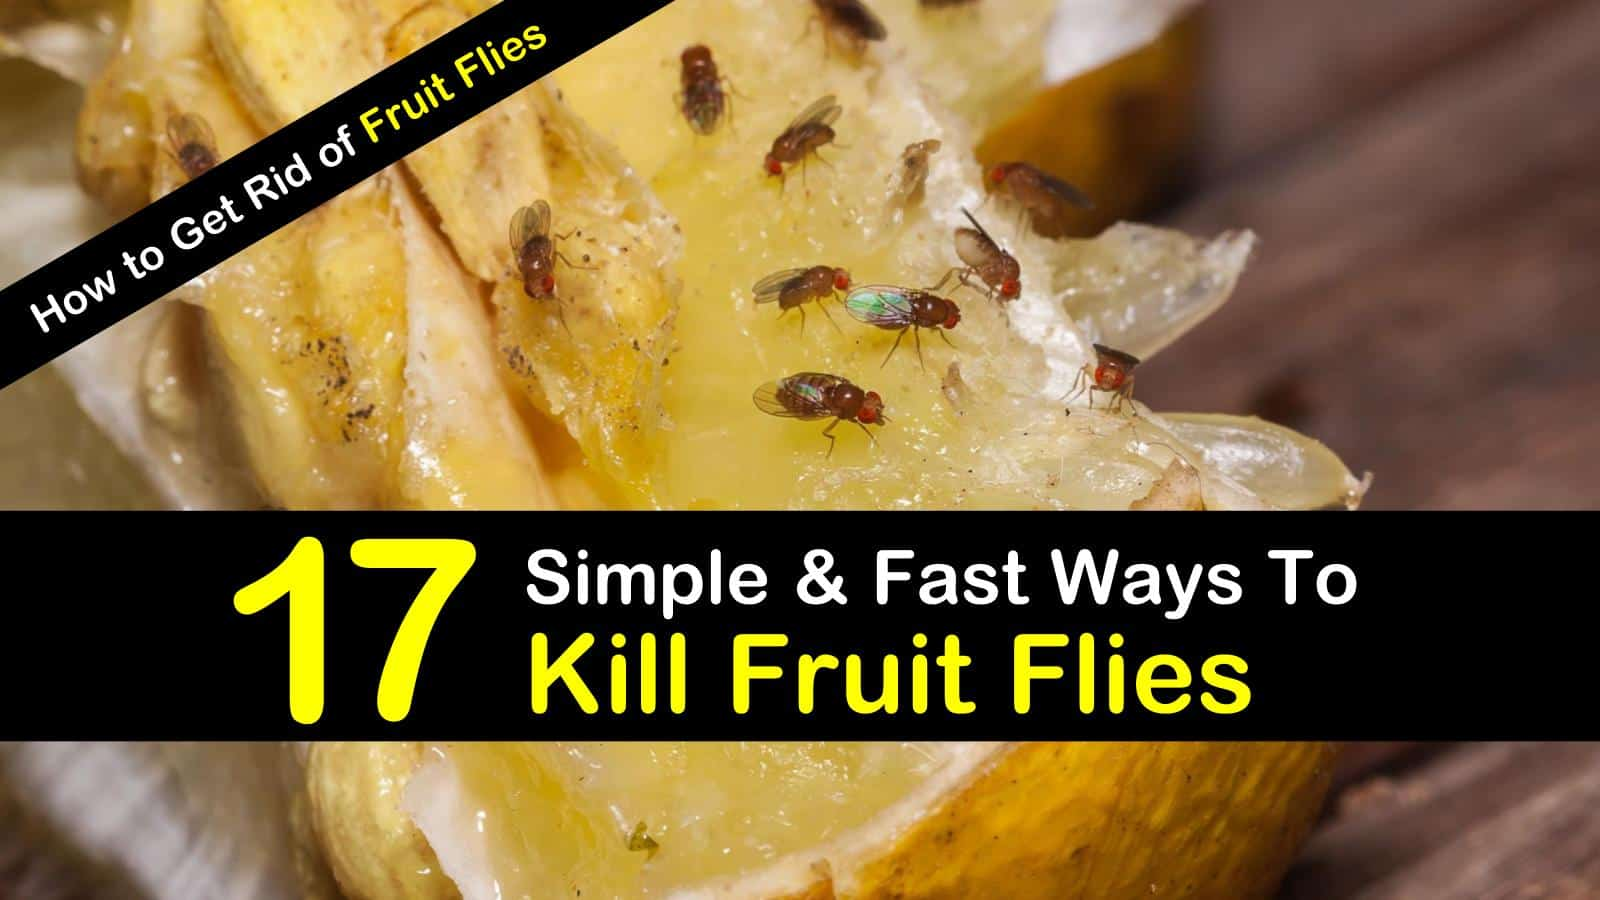 how to get rid of fruit flies titilimg1